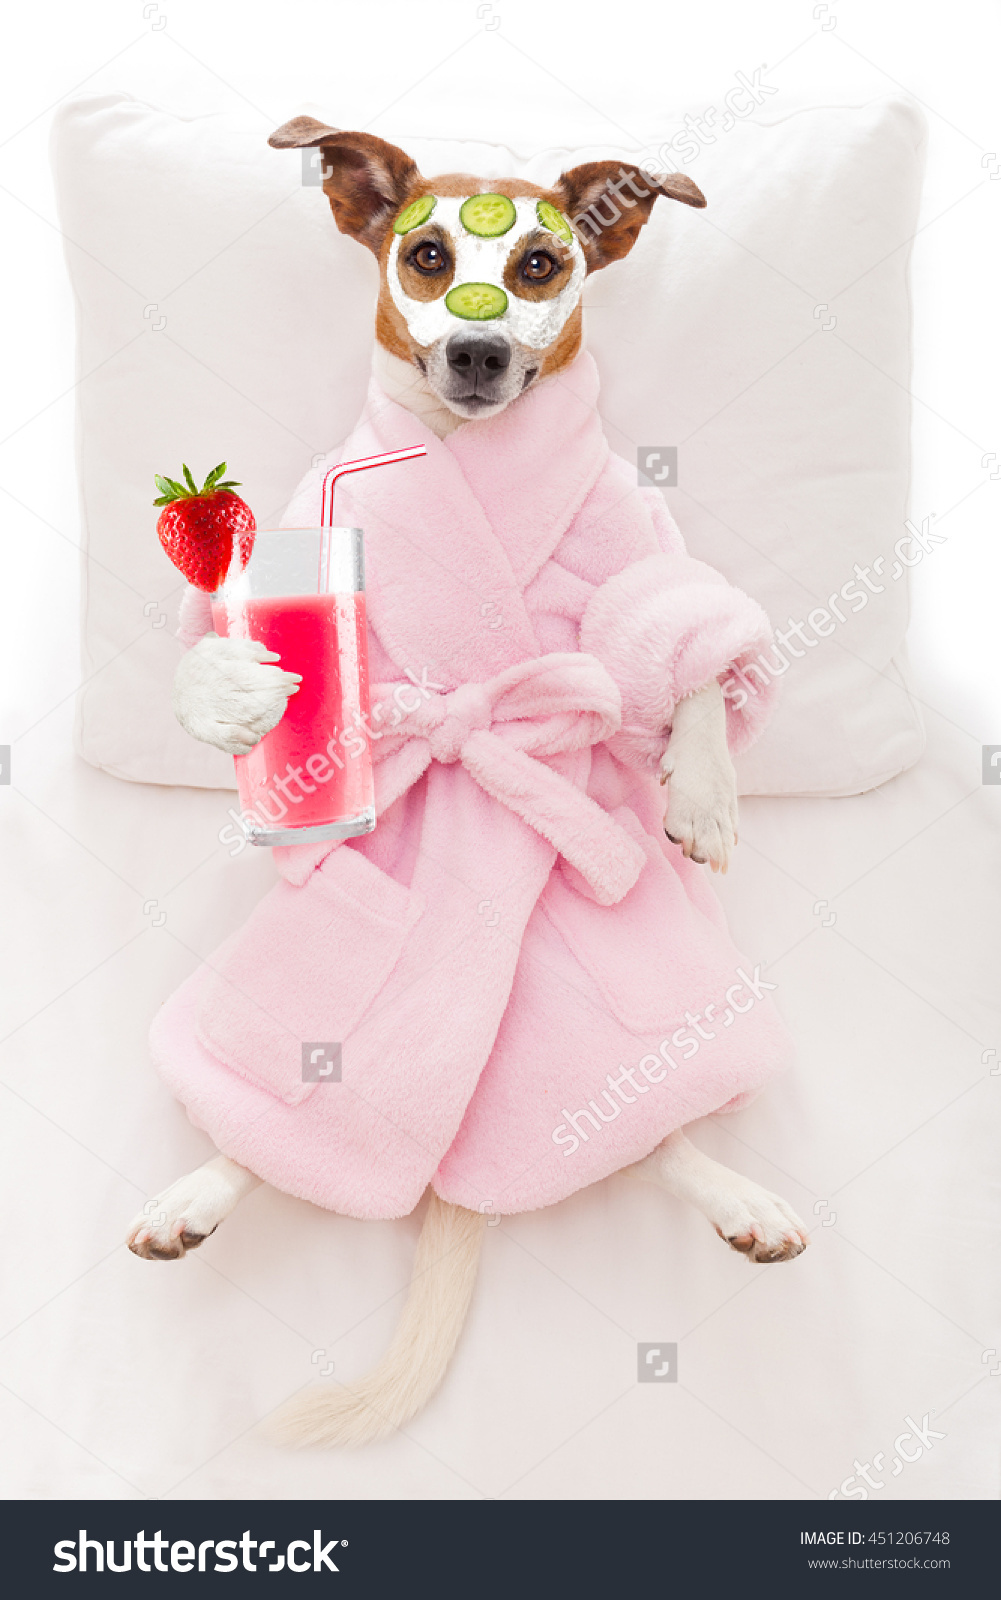 stock-photo-jack-russell-dog-relaxing-and-lying-in-spa-wellness-center-getting-a-facial-treatment-with-451206748.jpg